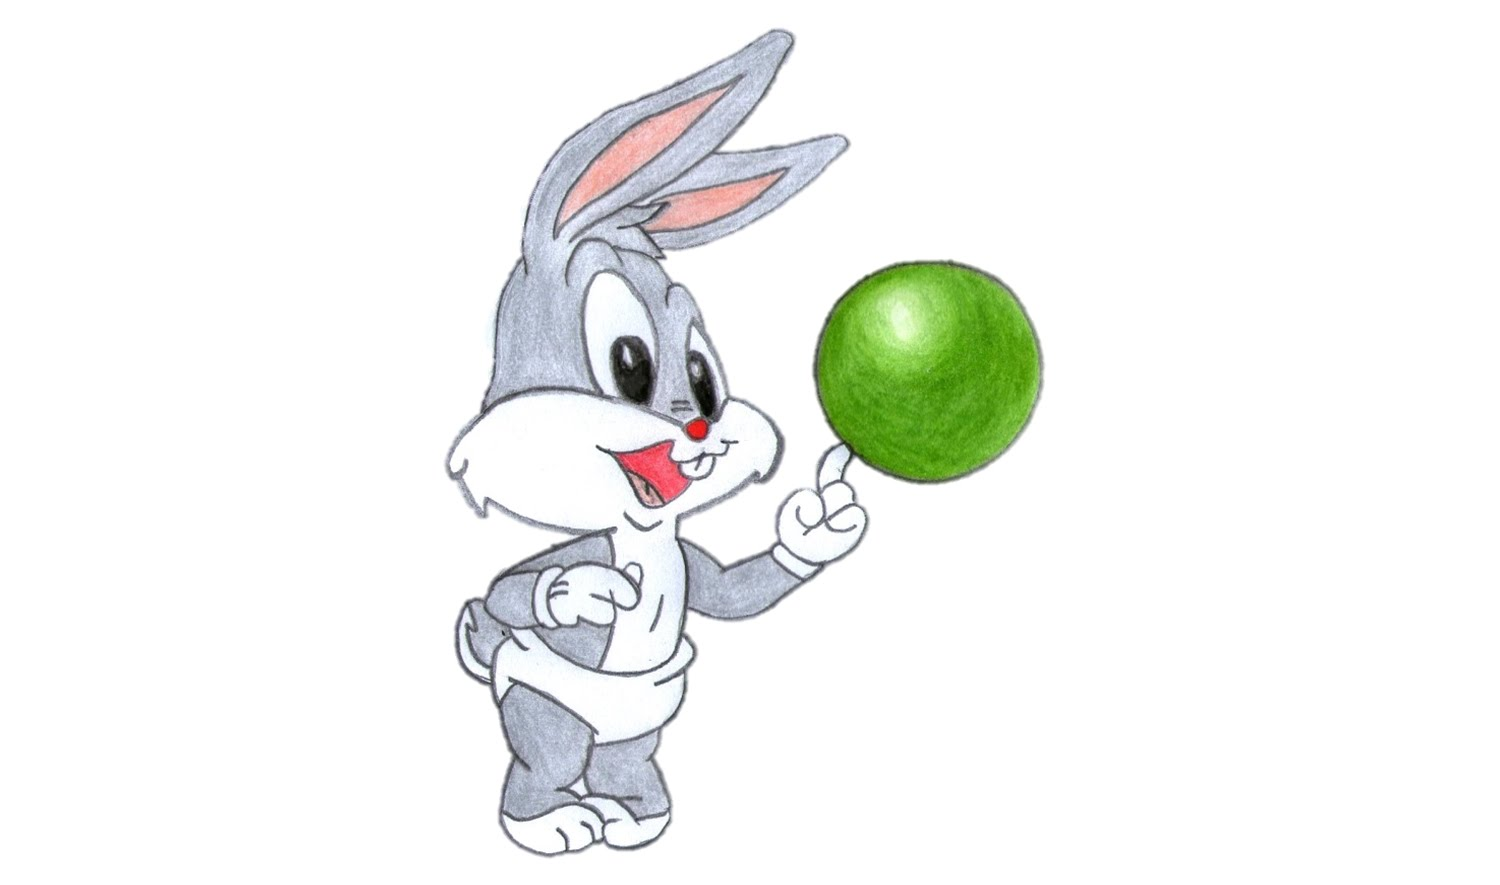 1500x885 How To Draw Baby Bugs Bunny (Looney Tunes)